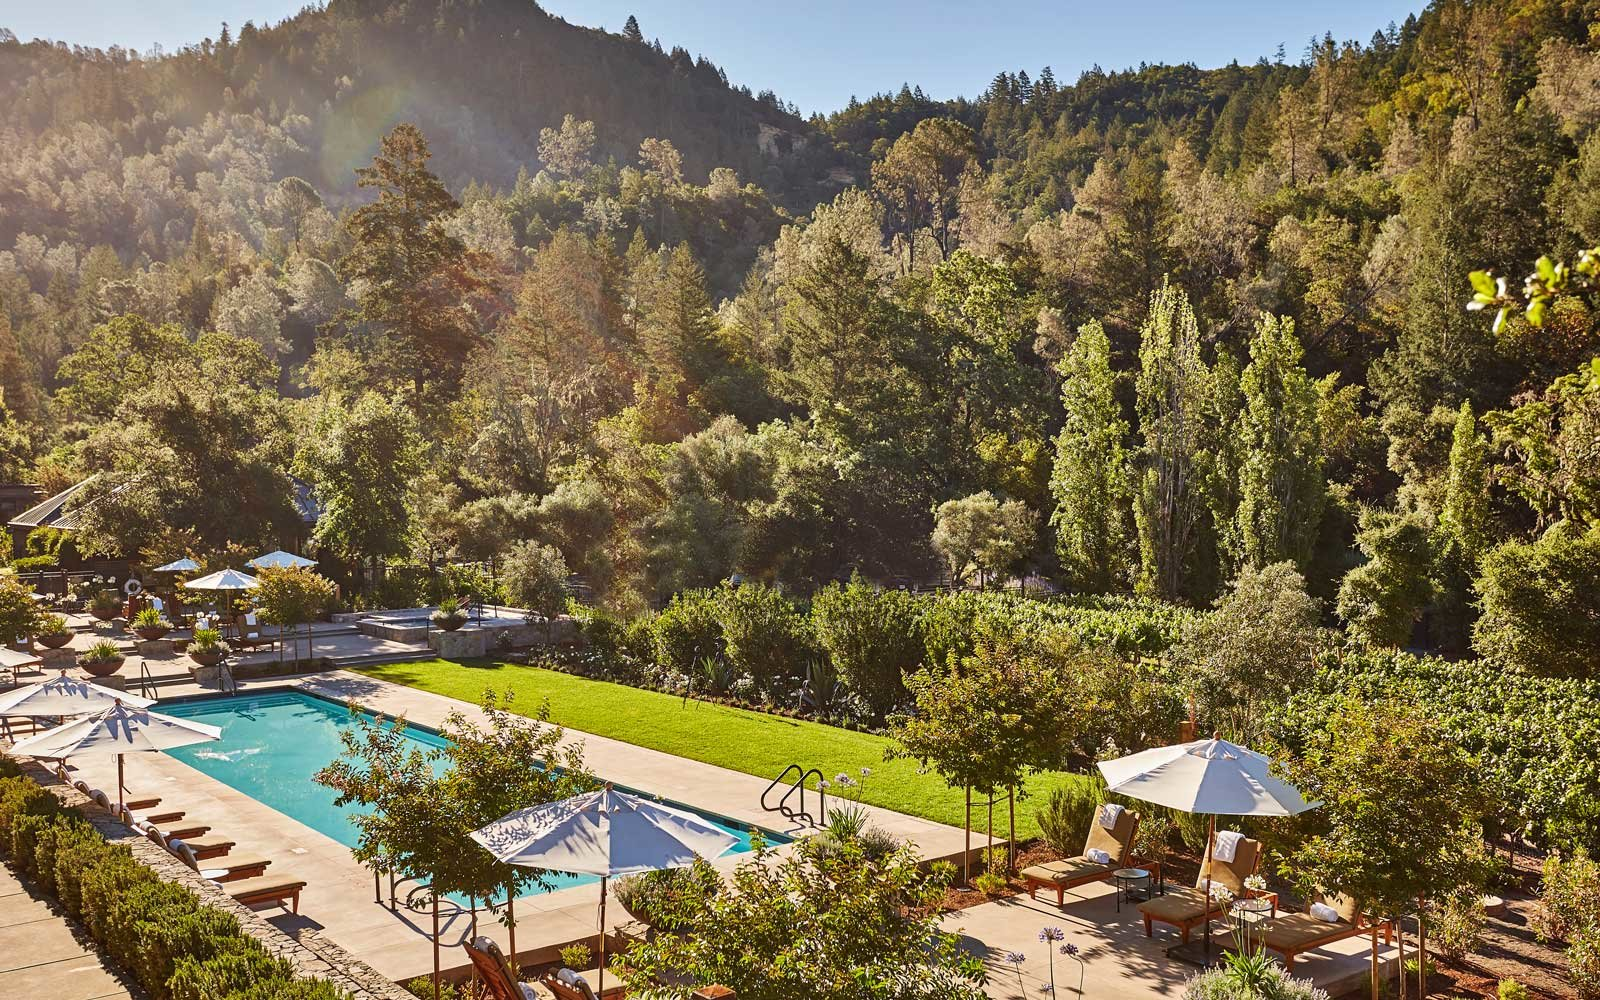 Top Romantic Hotels: Calistoga Ranch, California